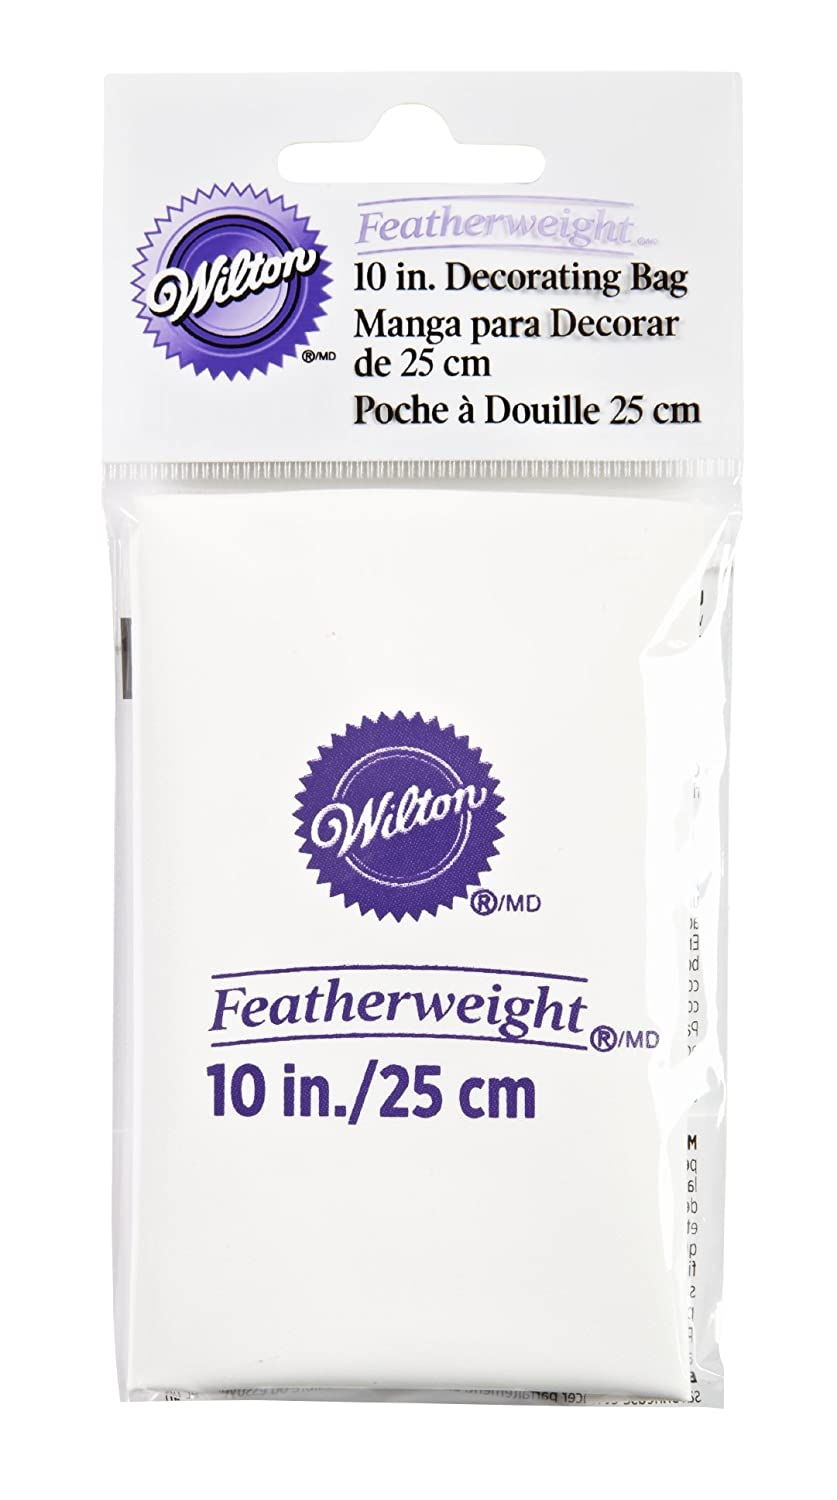 Featherweight Decorating Piping Bag, Reusable, 25.5 cm (10in) Wilton 404-5109